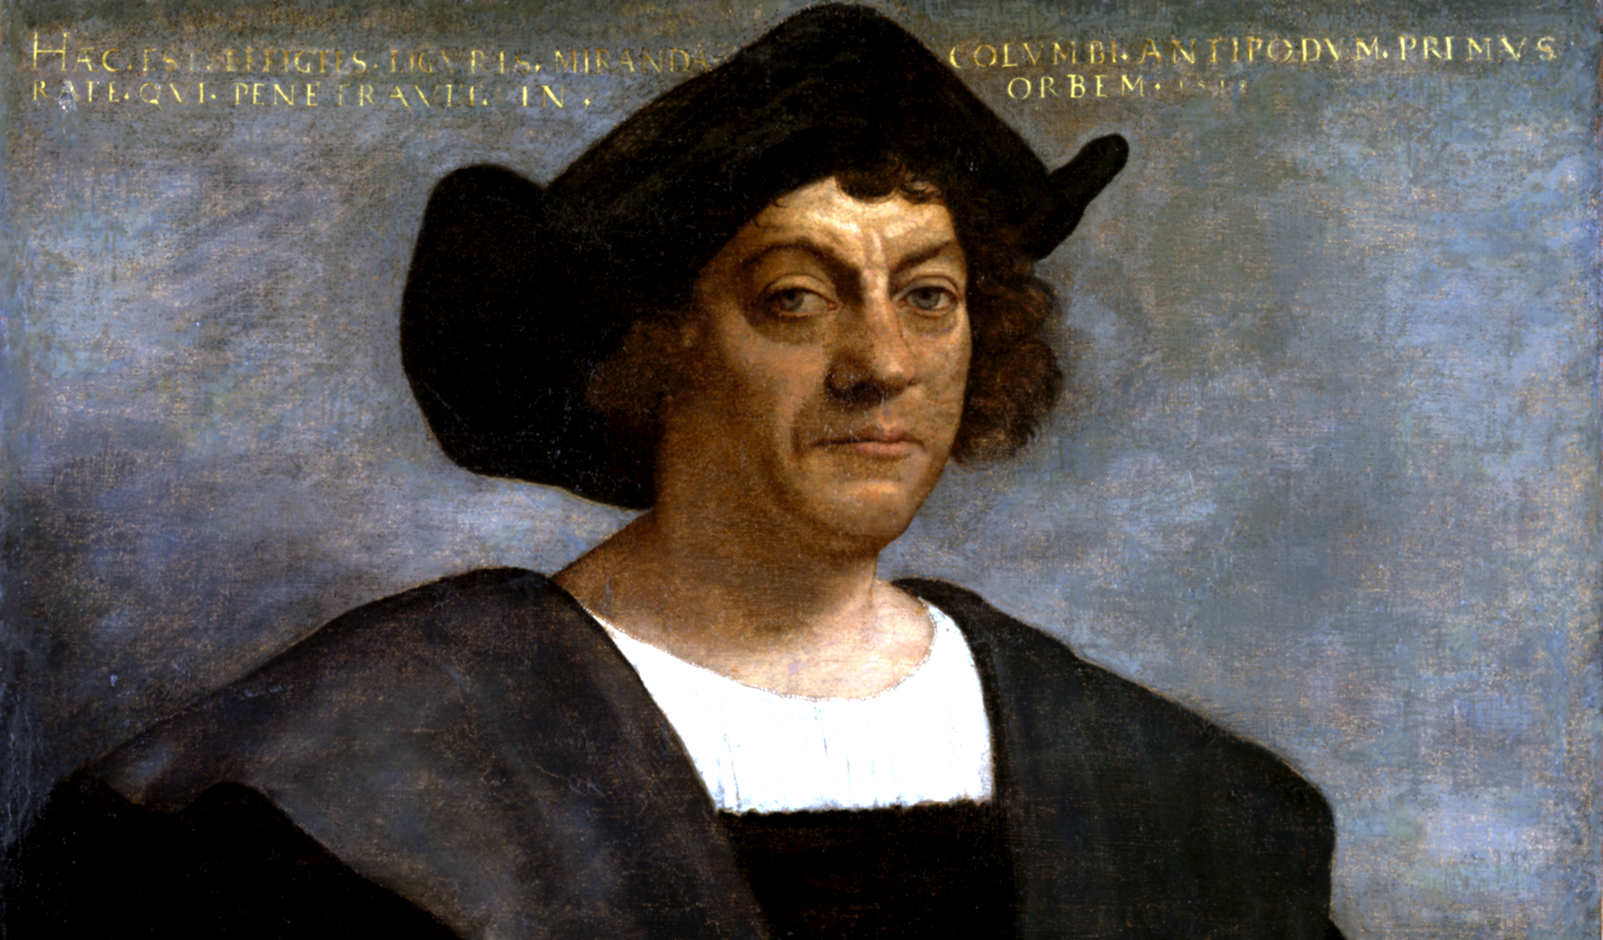 """an overview of the life and work of christopher columbus a spanish explorer Finally, columbus's disastrous stint came to an end when a royal investigator arrested the once-revered explorer and sent him back to spain, where he was stripped of his titles and royalty (""""columbus, christopher"""")."""